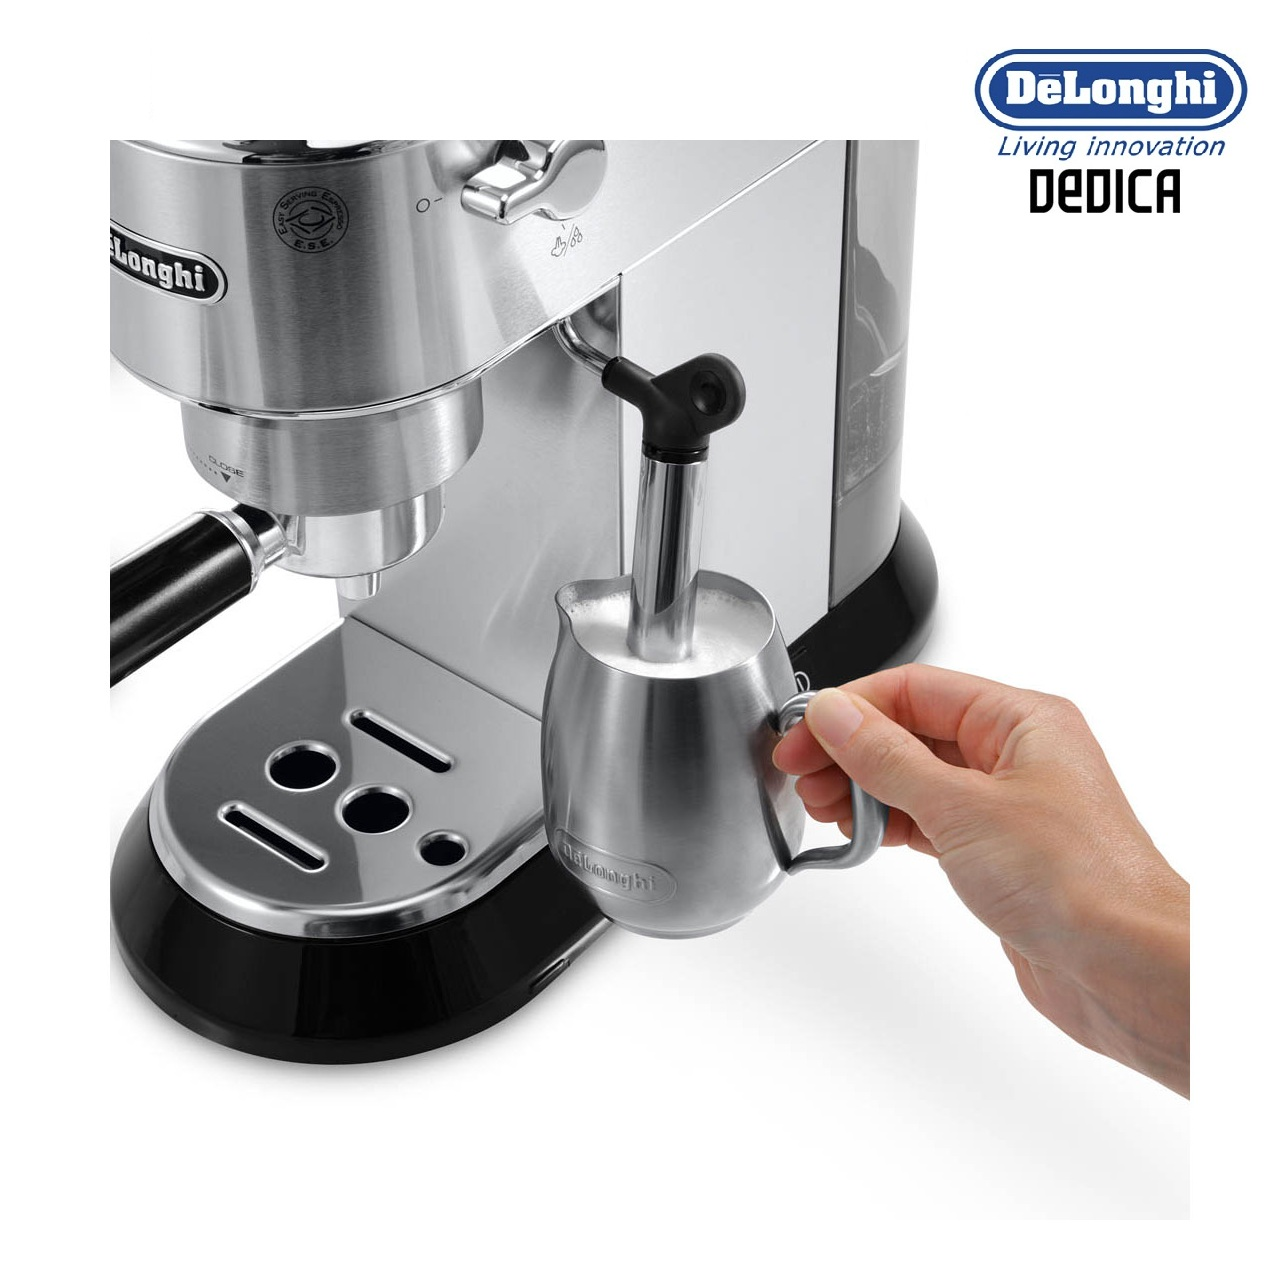 delonghi ec680m dedica espresso and cappuccino 15 bar pump coffee machine stainless steel. Black Bedroom Furniture Sets. Home Design Ideas